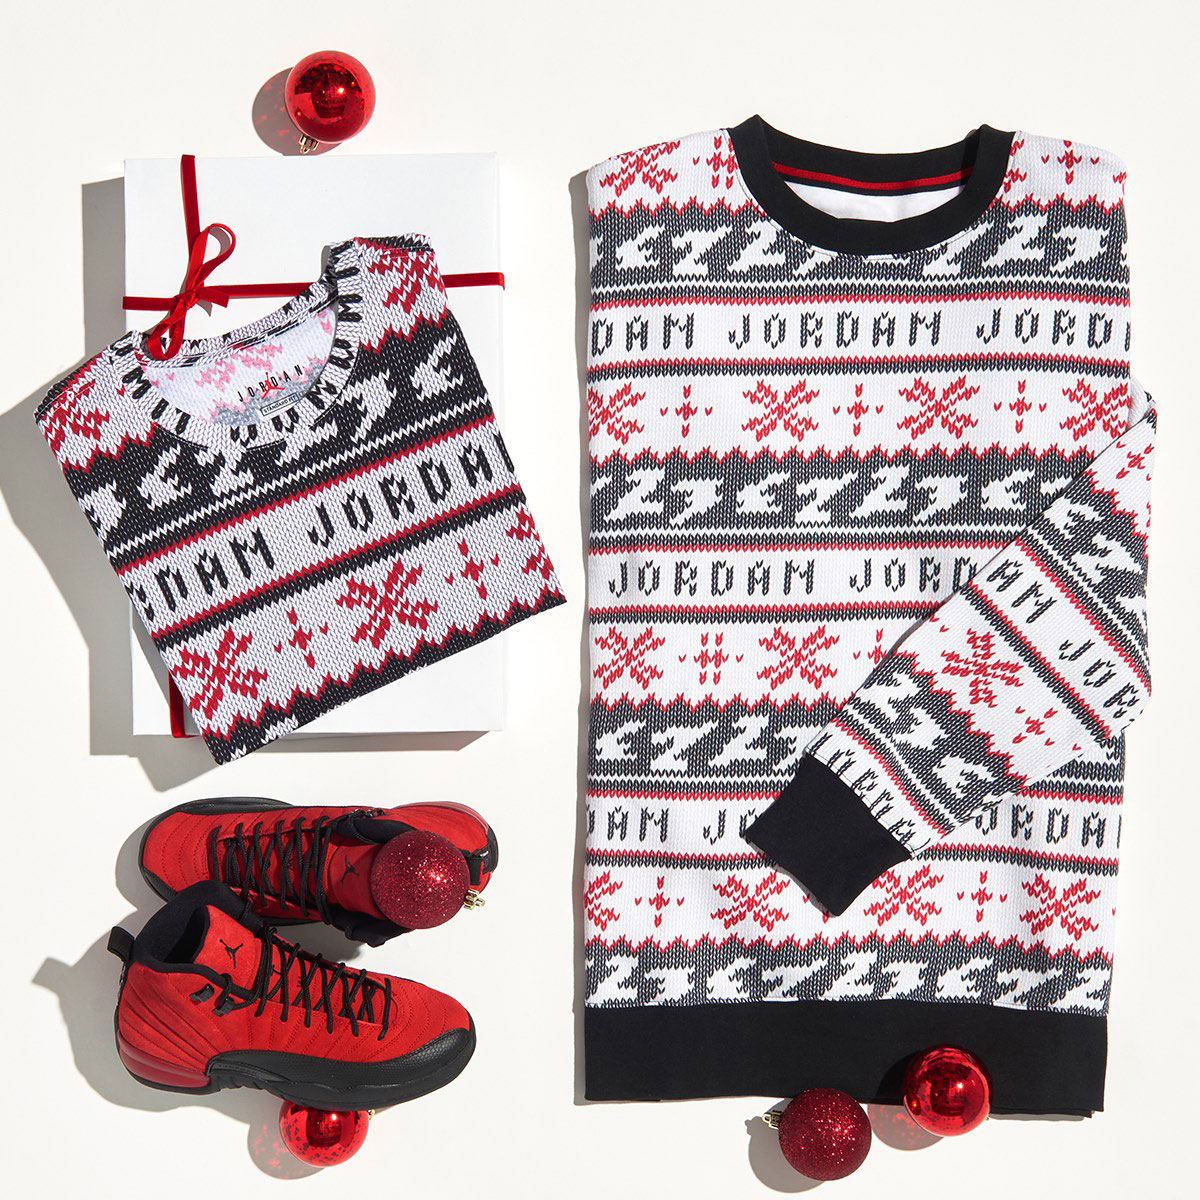 air-jordan-12-varsity-red-reverse-flu-game-holiday-2020-shirts